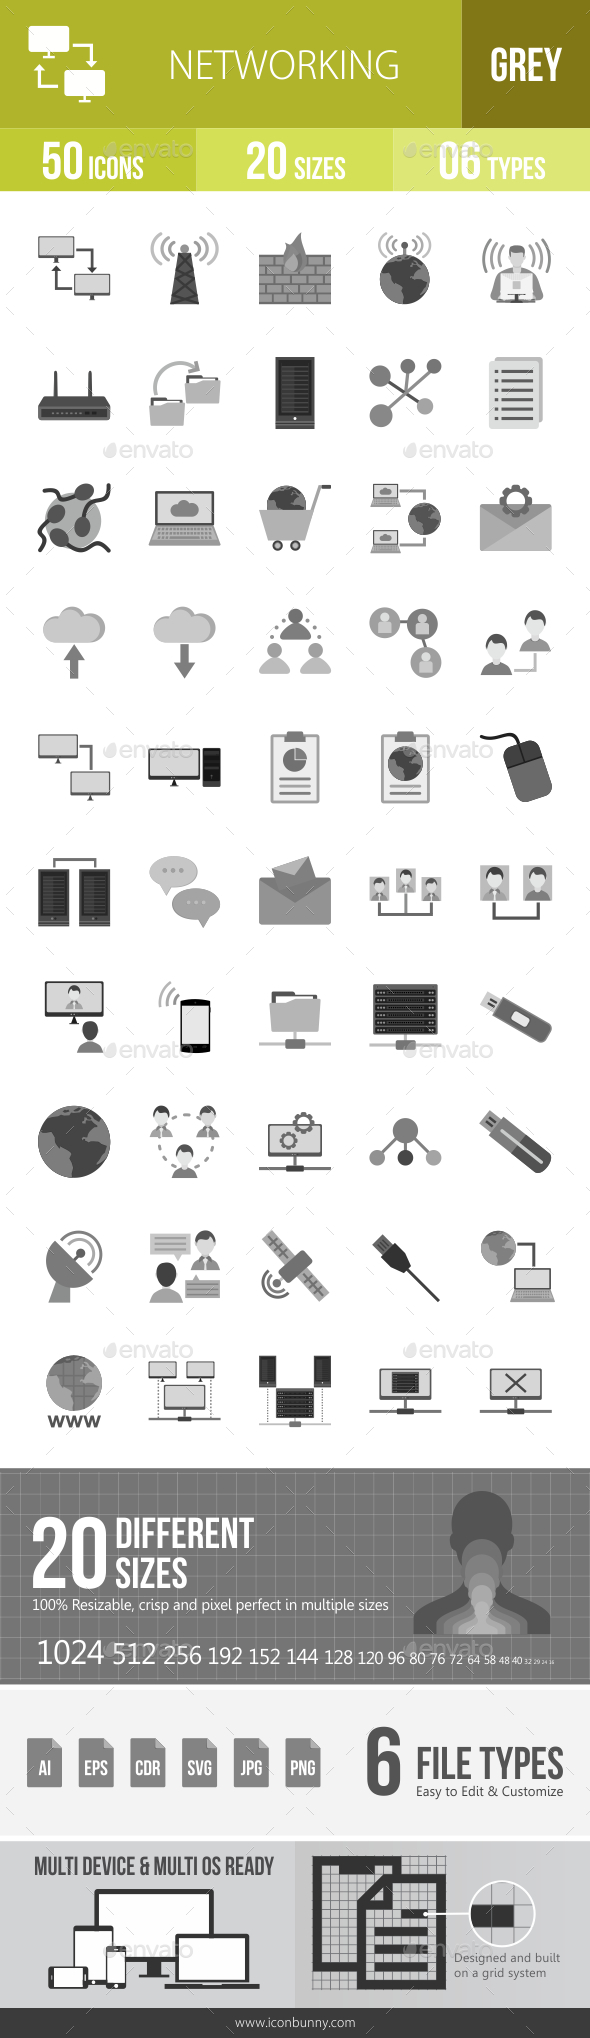 Networking Greyscale Icons - Icons